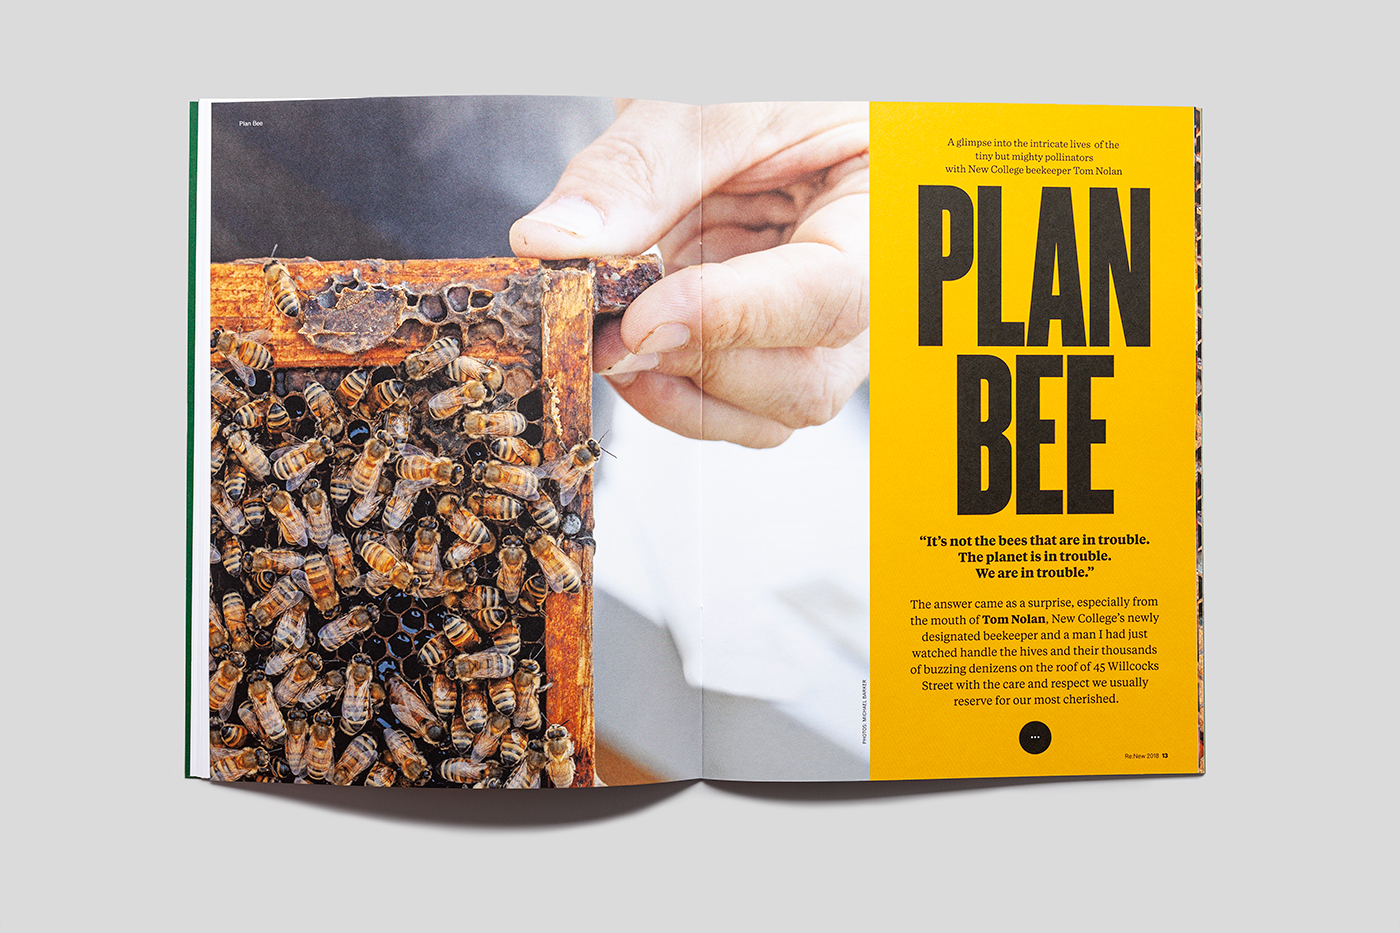 Magazine spread showing image of bees and the hand of a beekeeper.